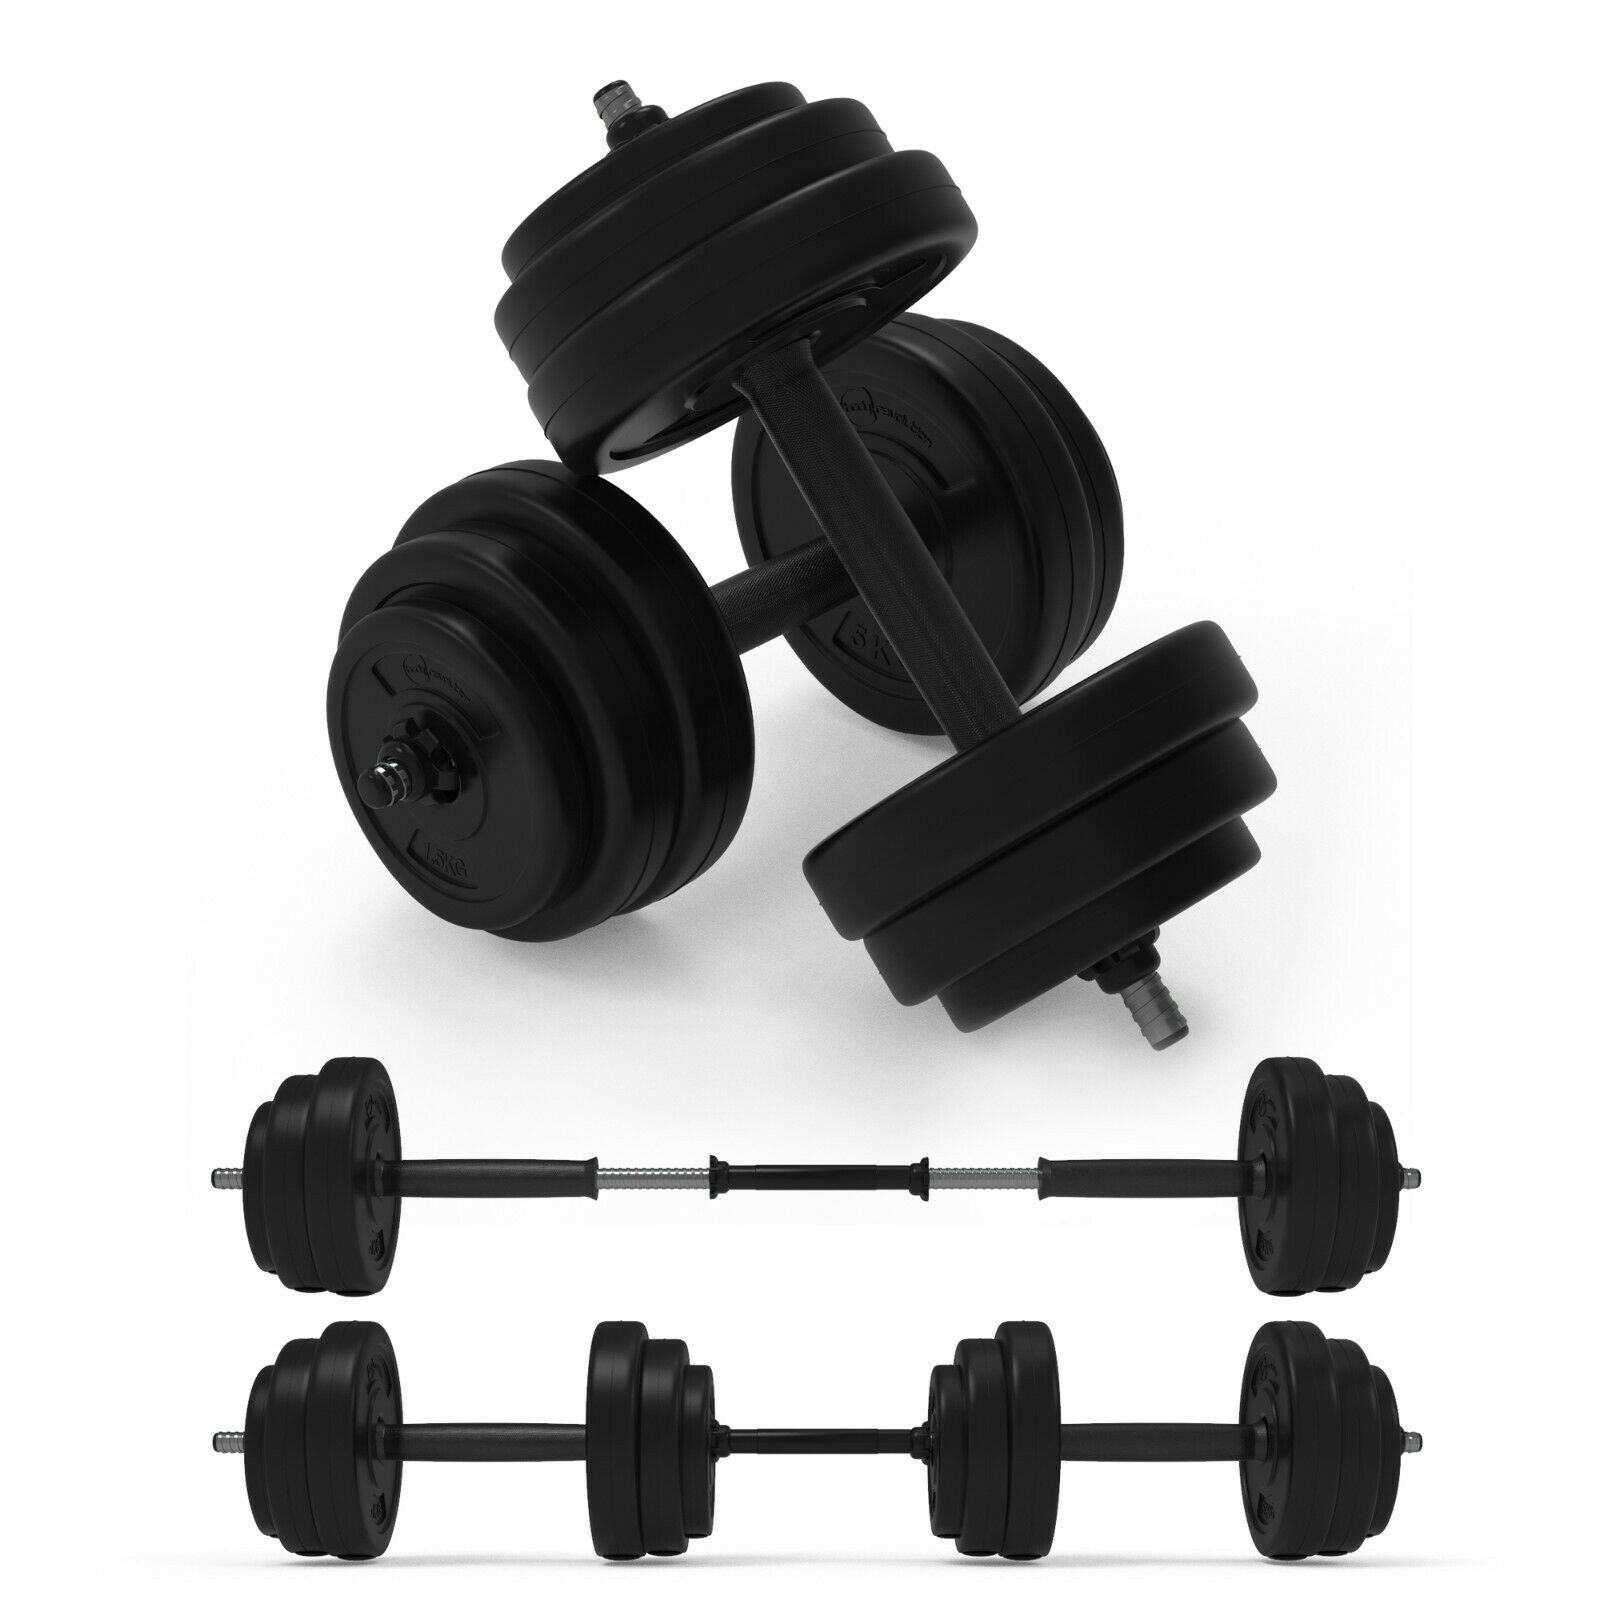 Best Home Dumbbell Set: Adjustable Free Weights For